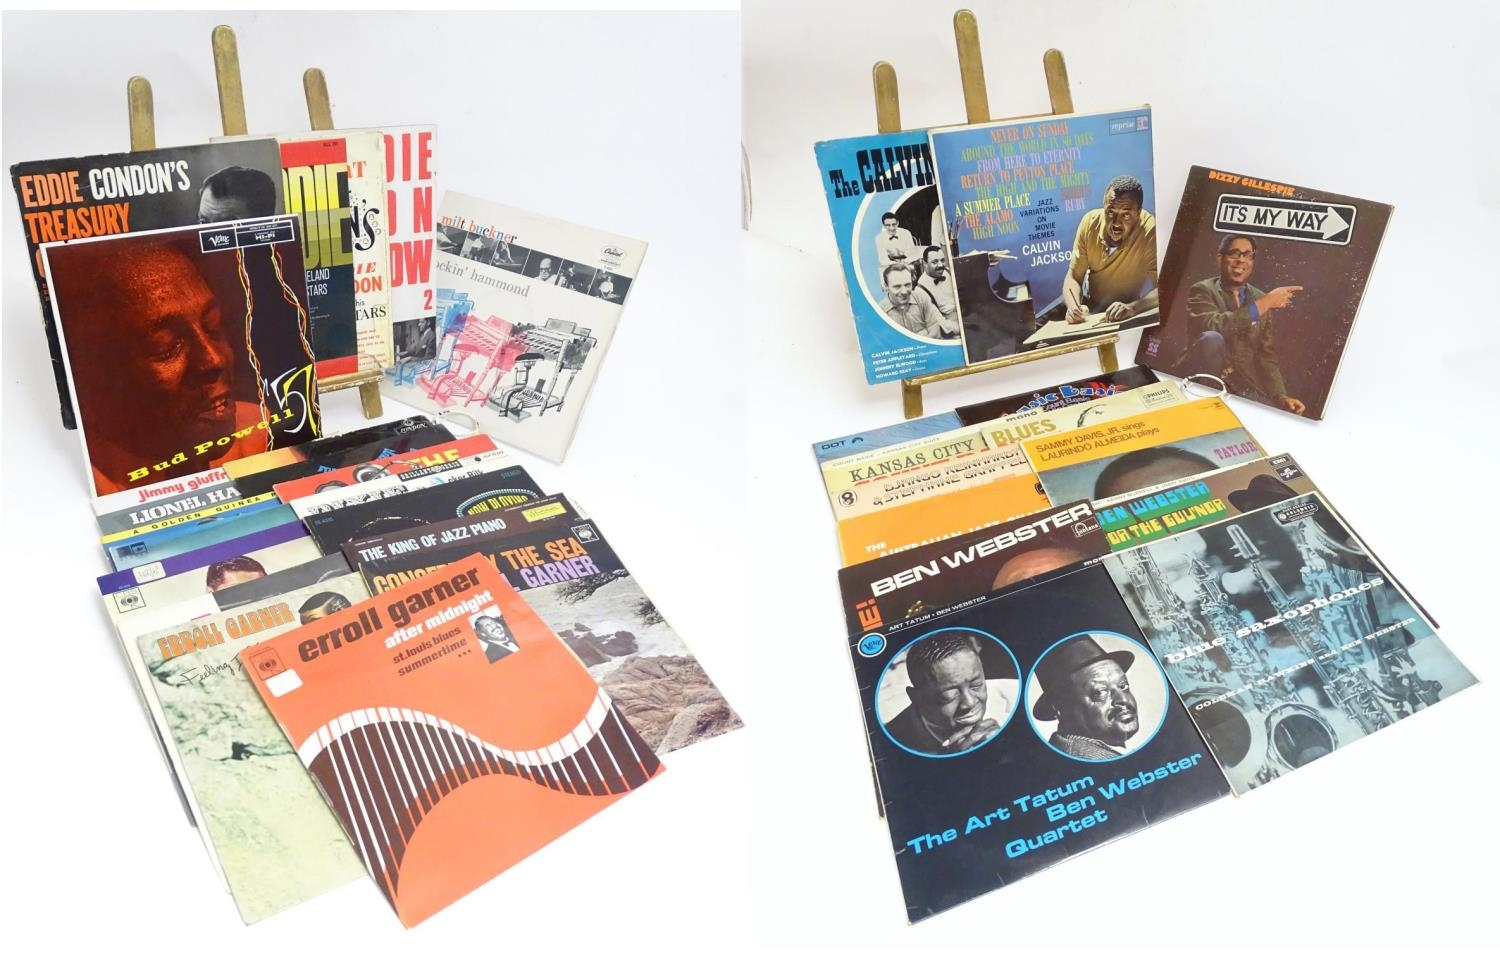 A collection of 20thC 33 rpm Vinyl records / LPs, - Jazz, comprising: The Eddie Condon Floor Show 2,